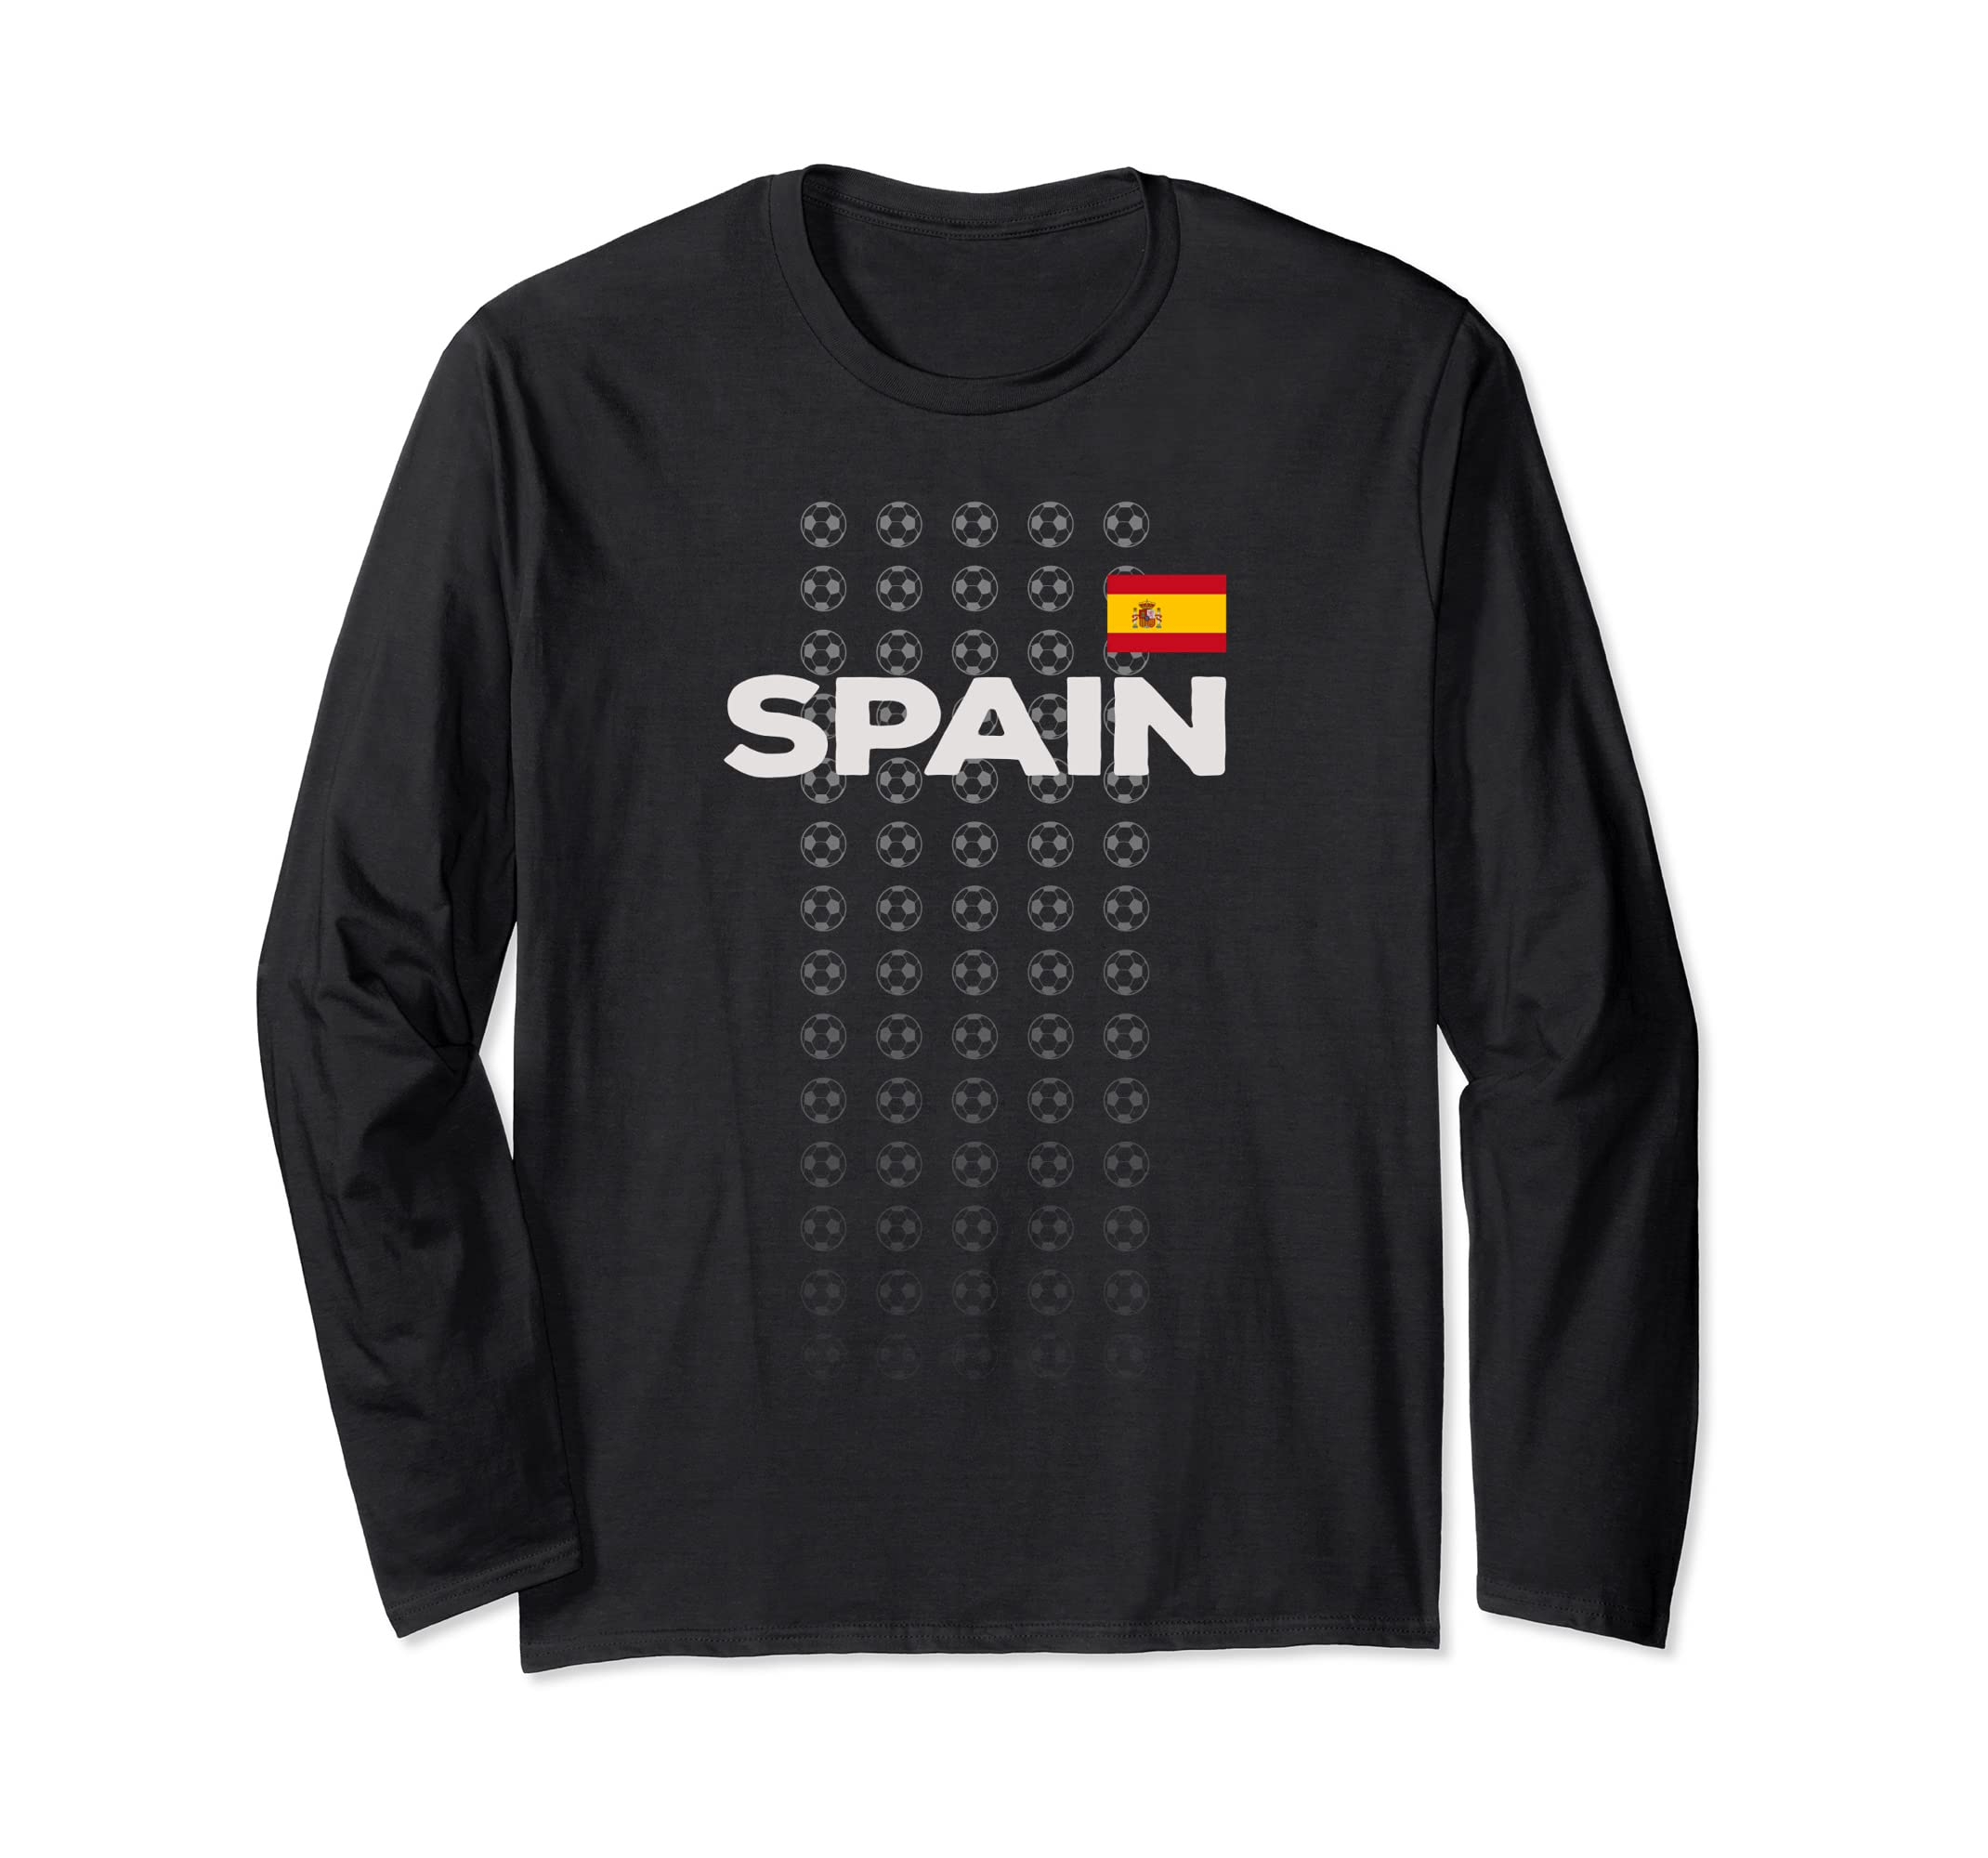 7ebed1d6059 Spanish Football Team T Shirts